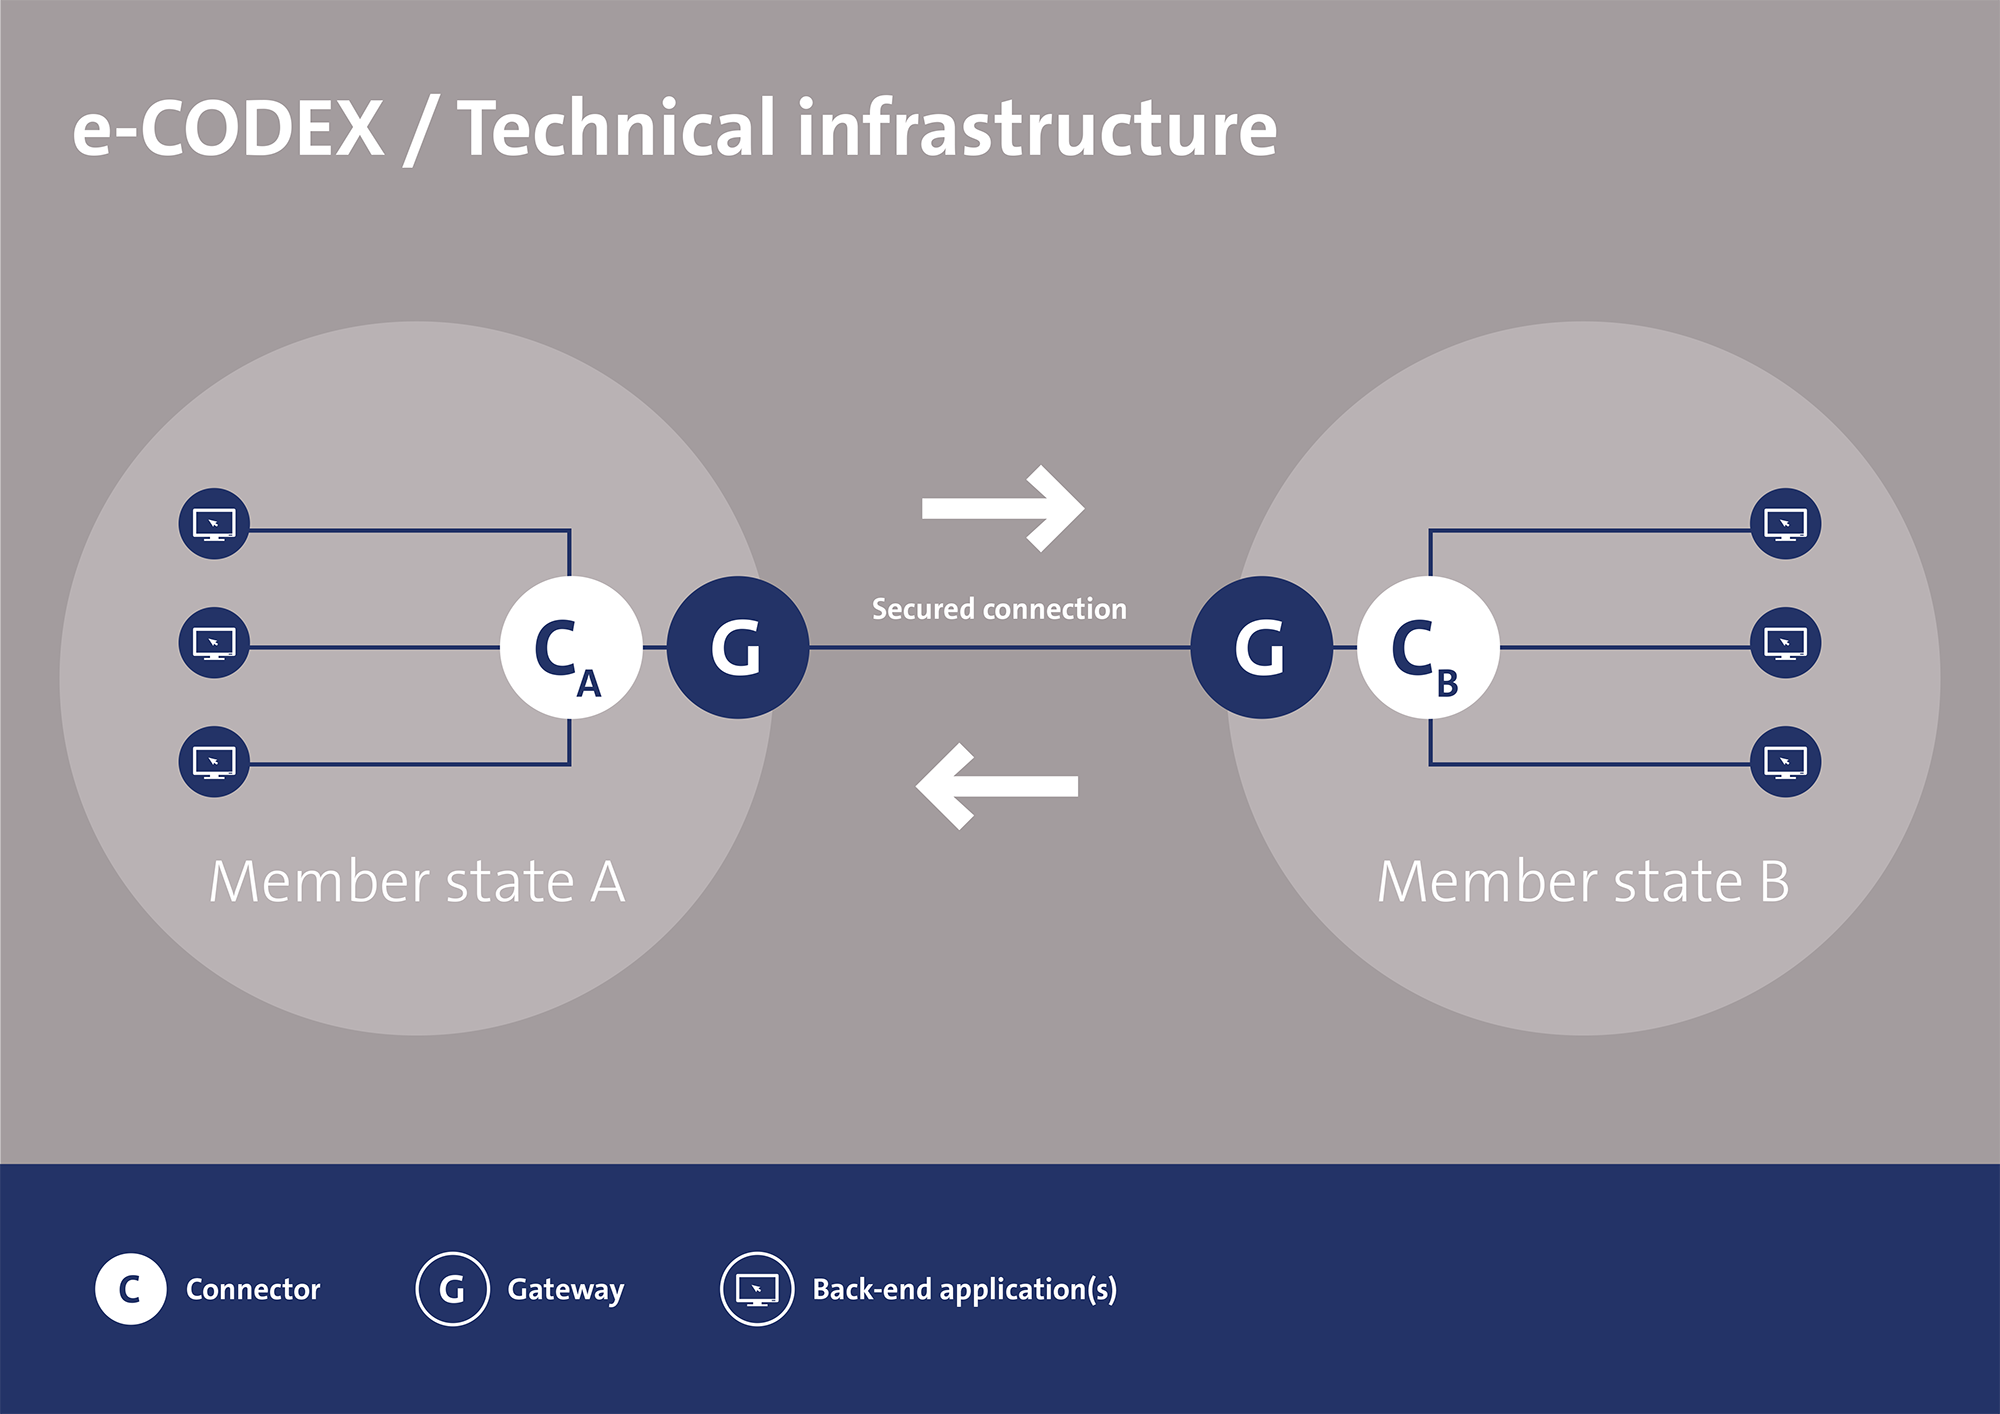 e-CODEX Technical infrastructure: overview